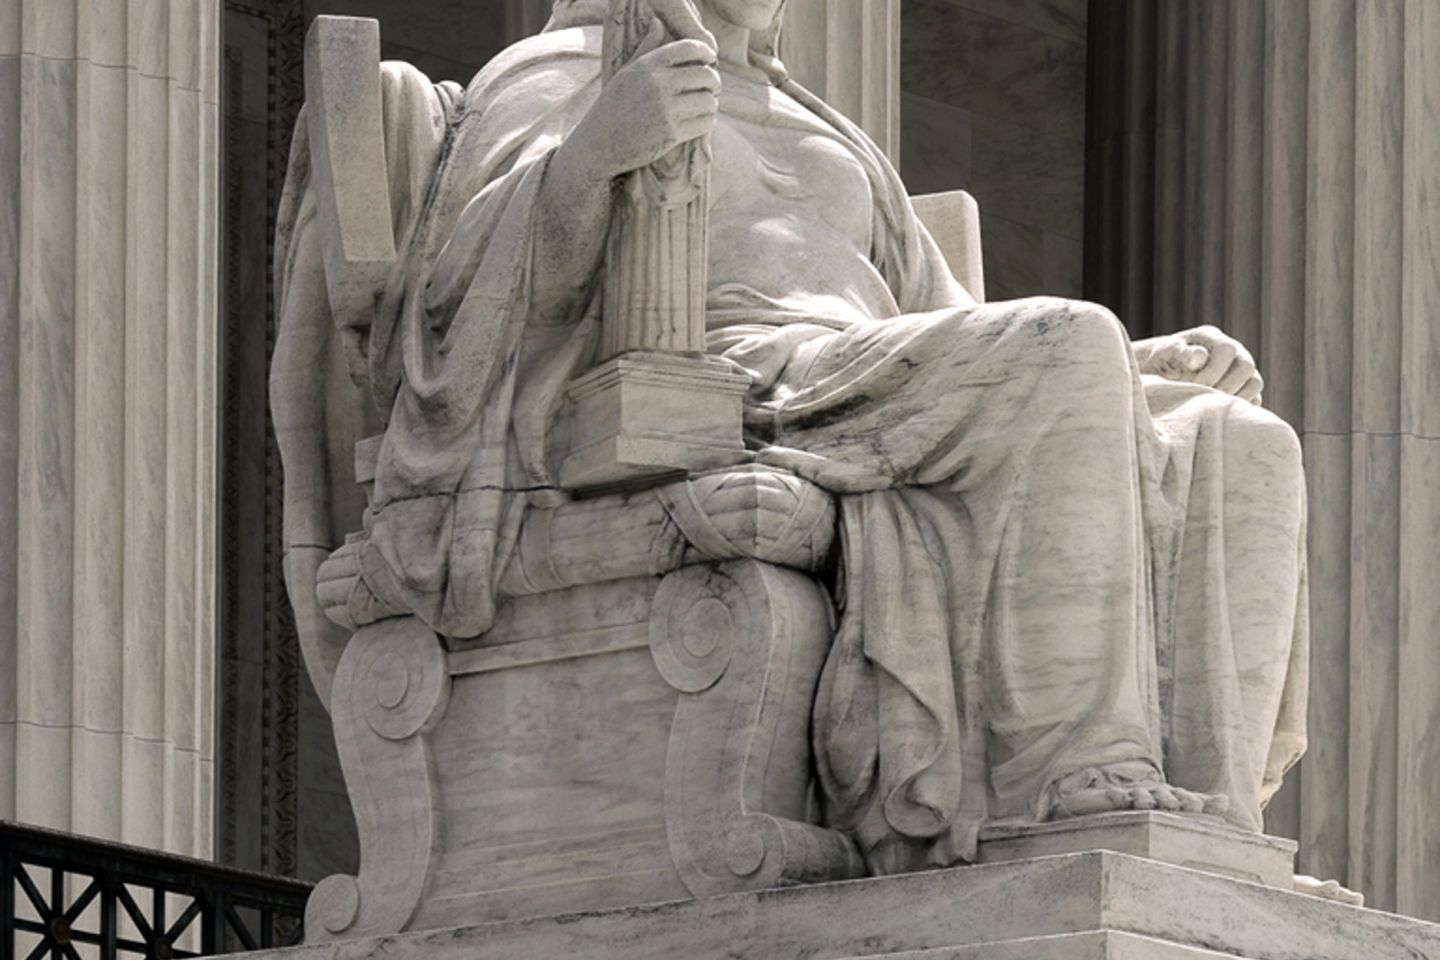 Statue of Contemplation of Justice by James Earle Fraser on the U.S. Supreme Court Building's main steps.